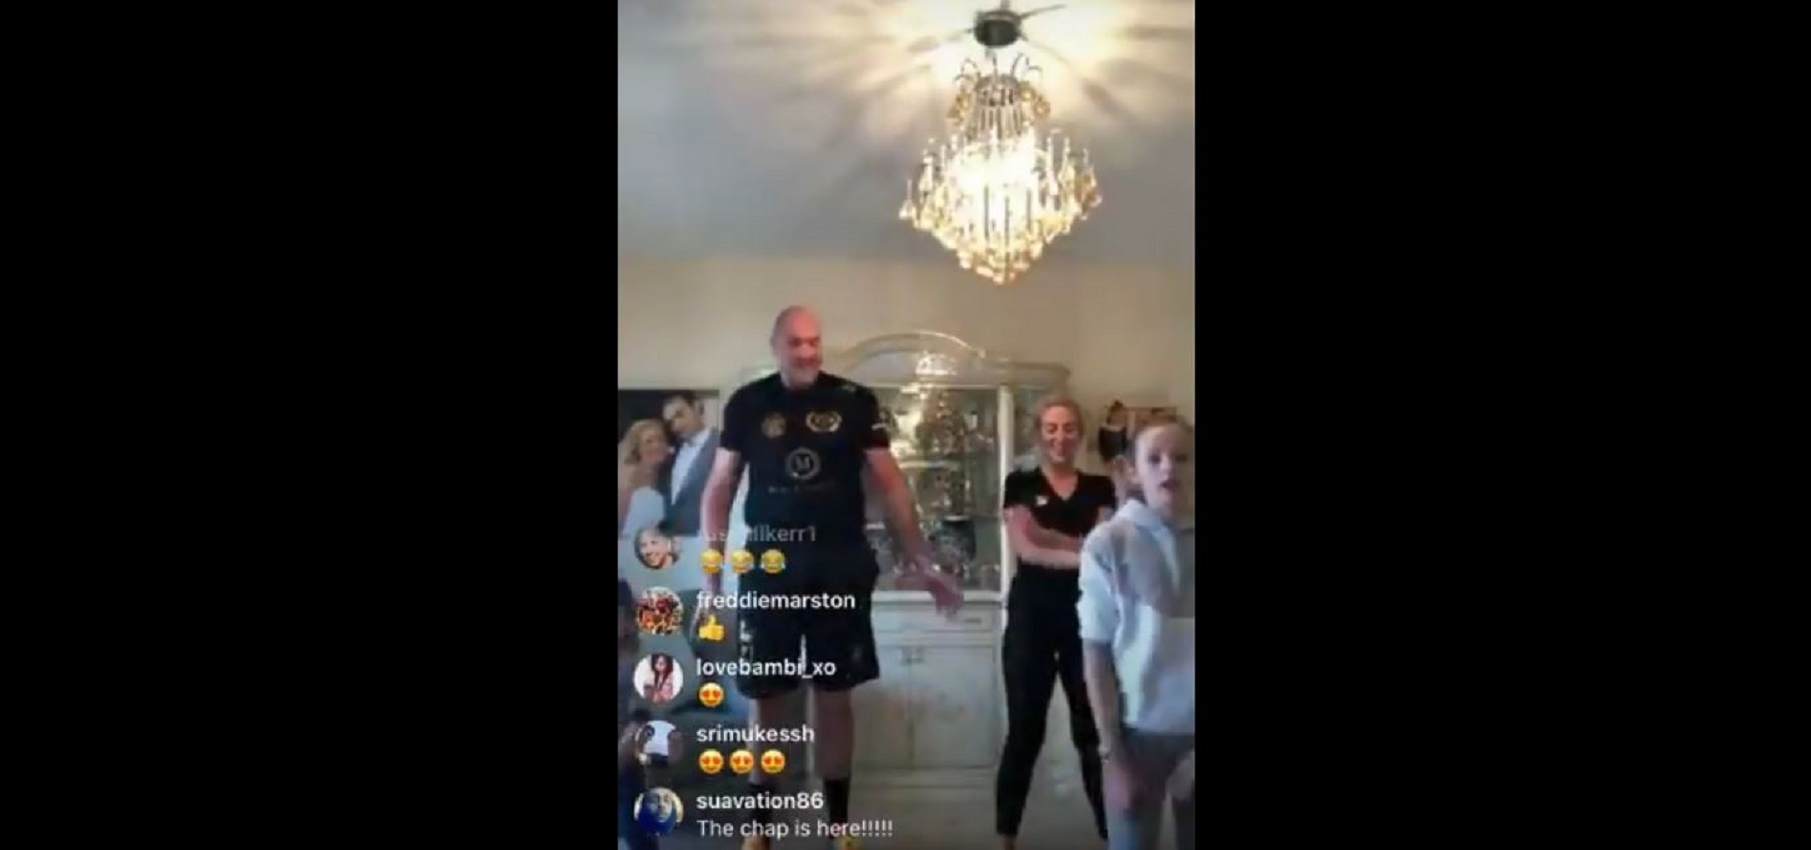 People Are In Stitches About What Tyson Fury's Son Said To Him